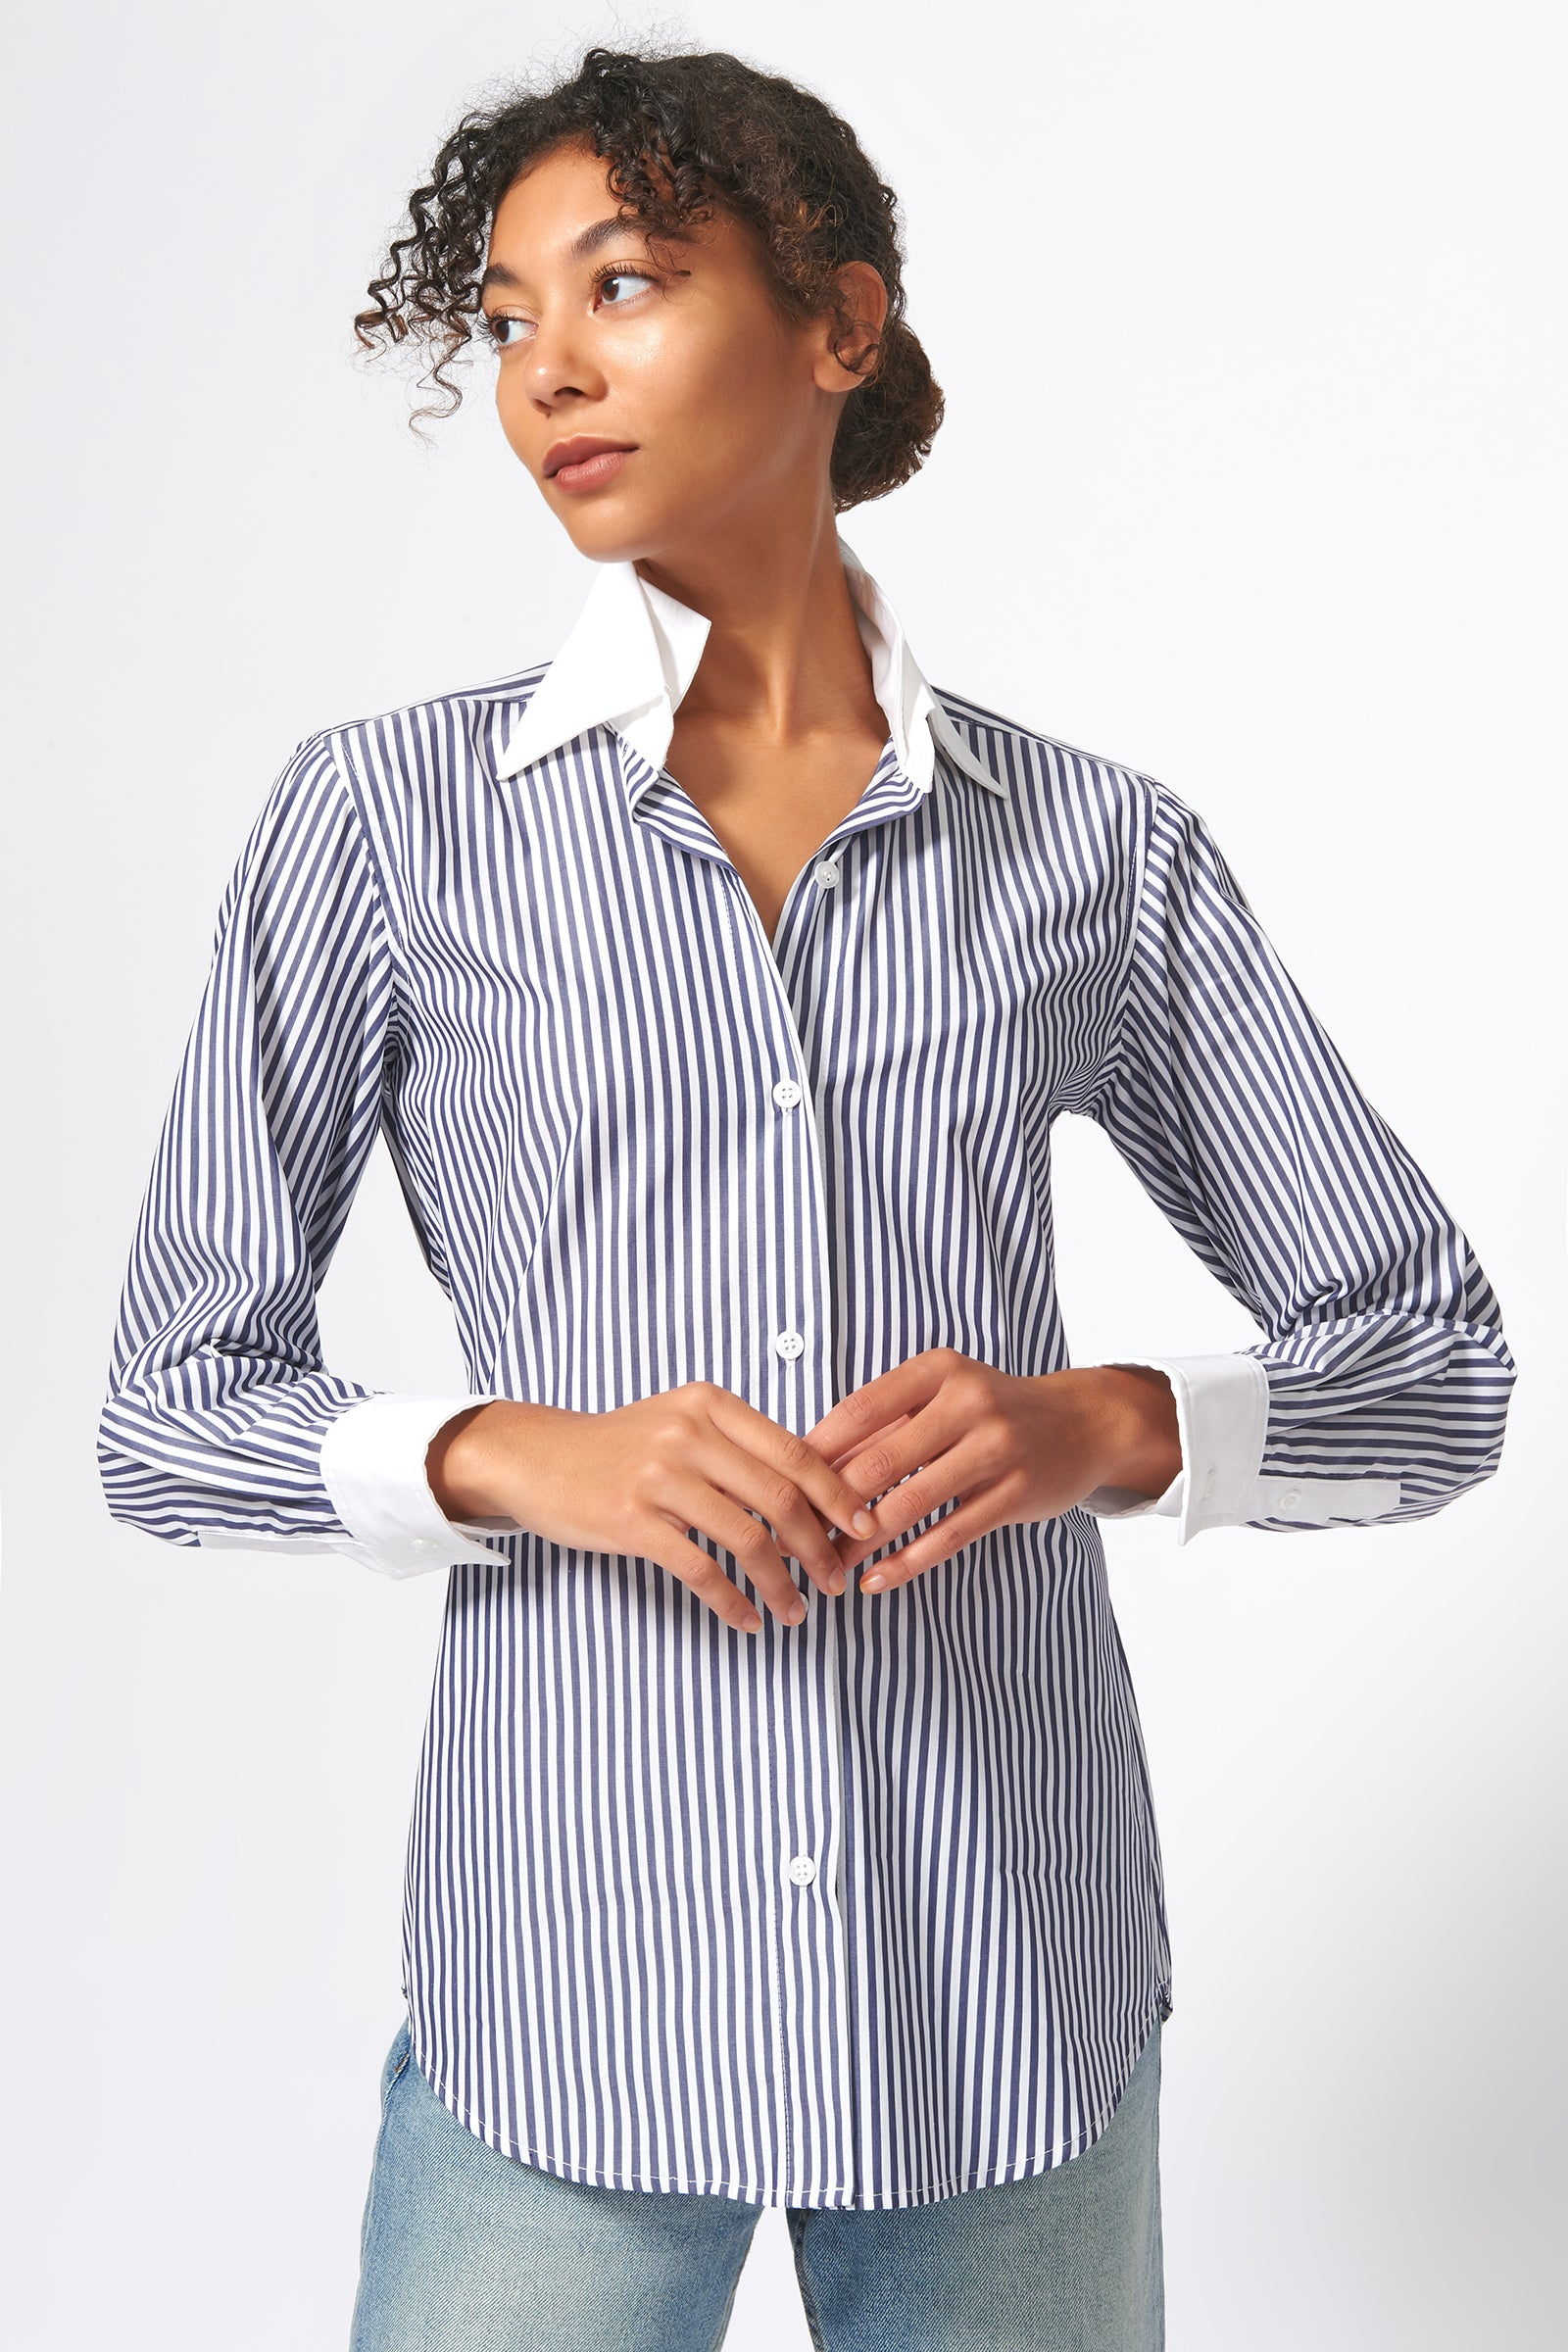 Kal Rieman Double Collar Shirt in Blue and White Stripe Print on Model Front